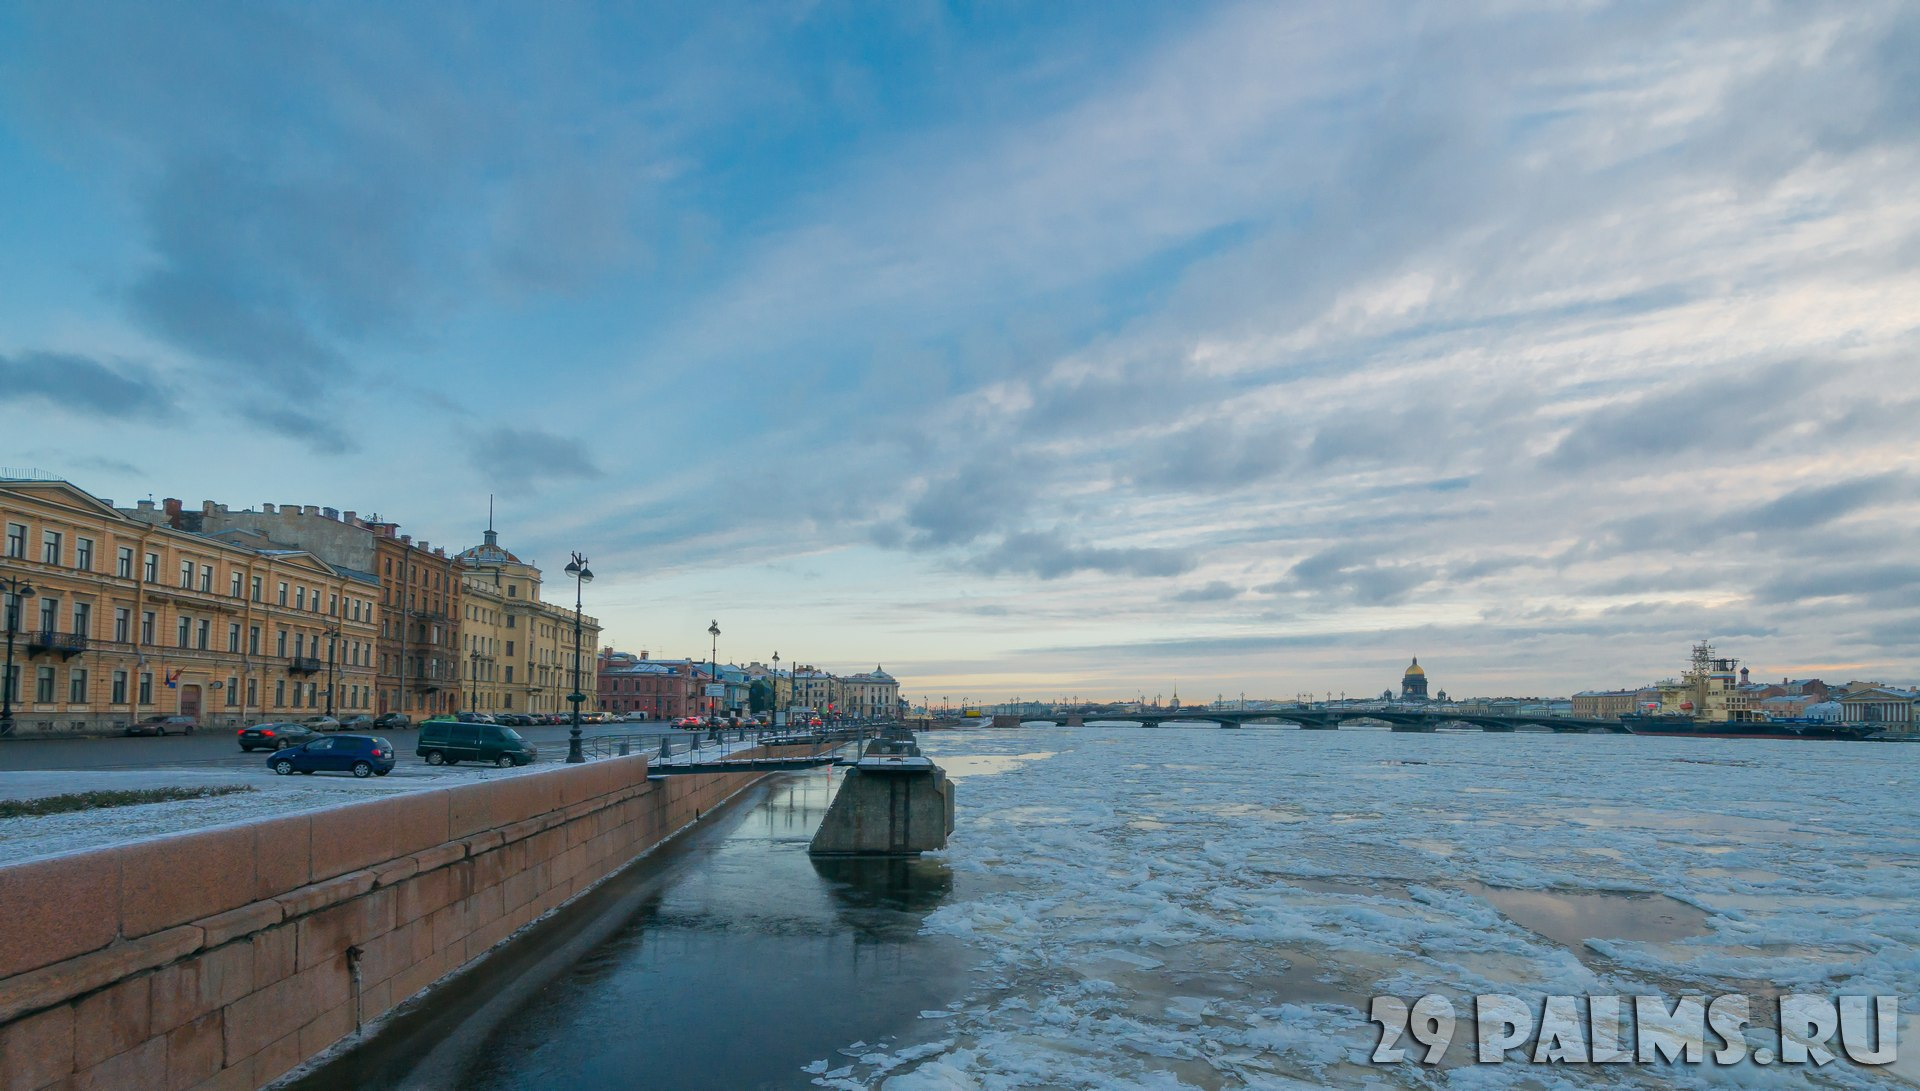 Санкт-Петербург. Набережная лейтенанта Шмидта. A view of the Annunciation bridge with pier St. Petersburg naval base at the Lieutenant Schmidt embankment